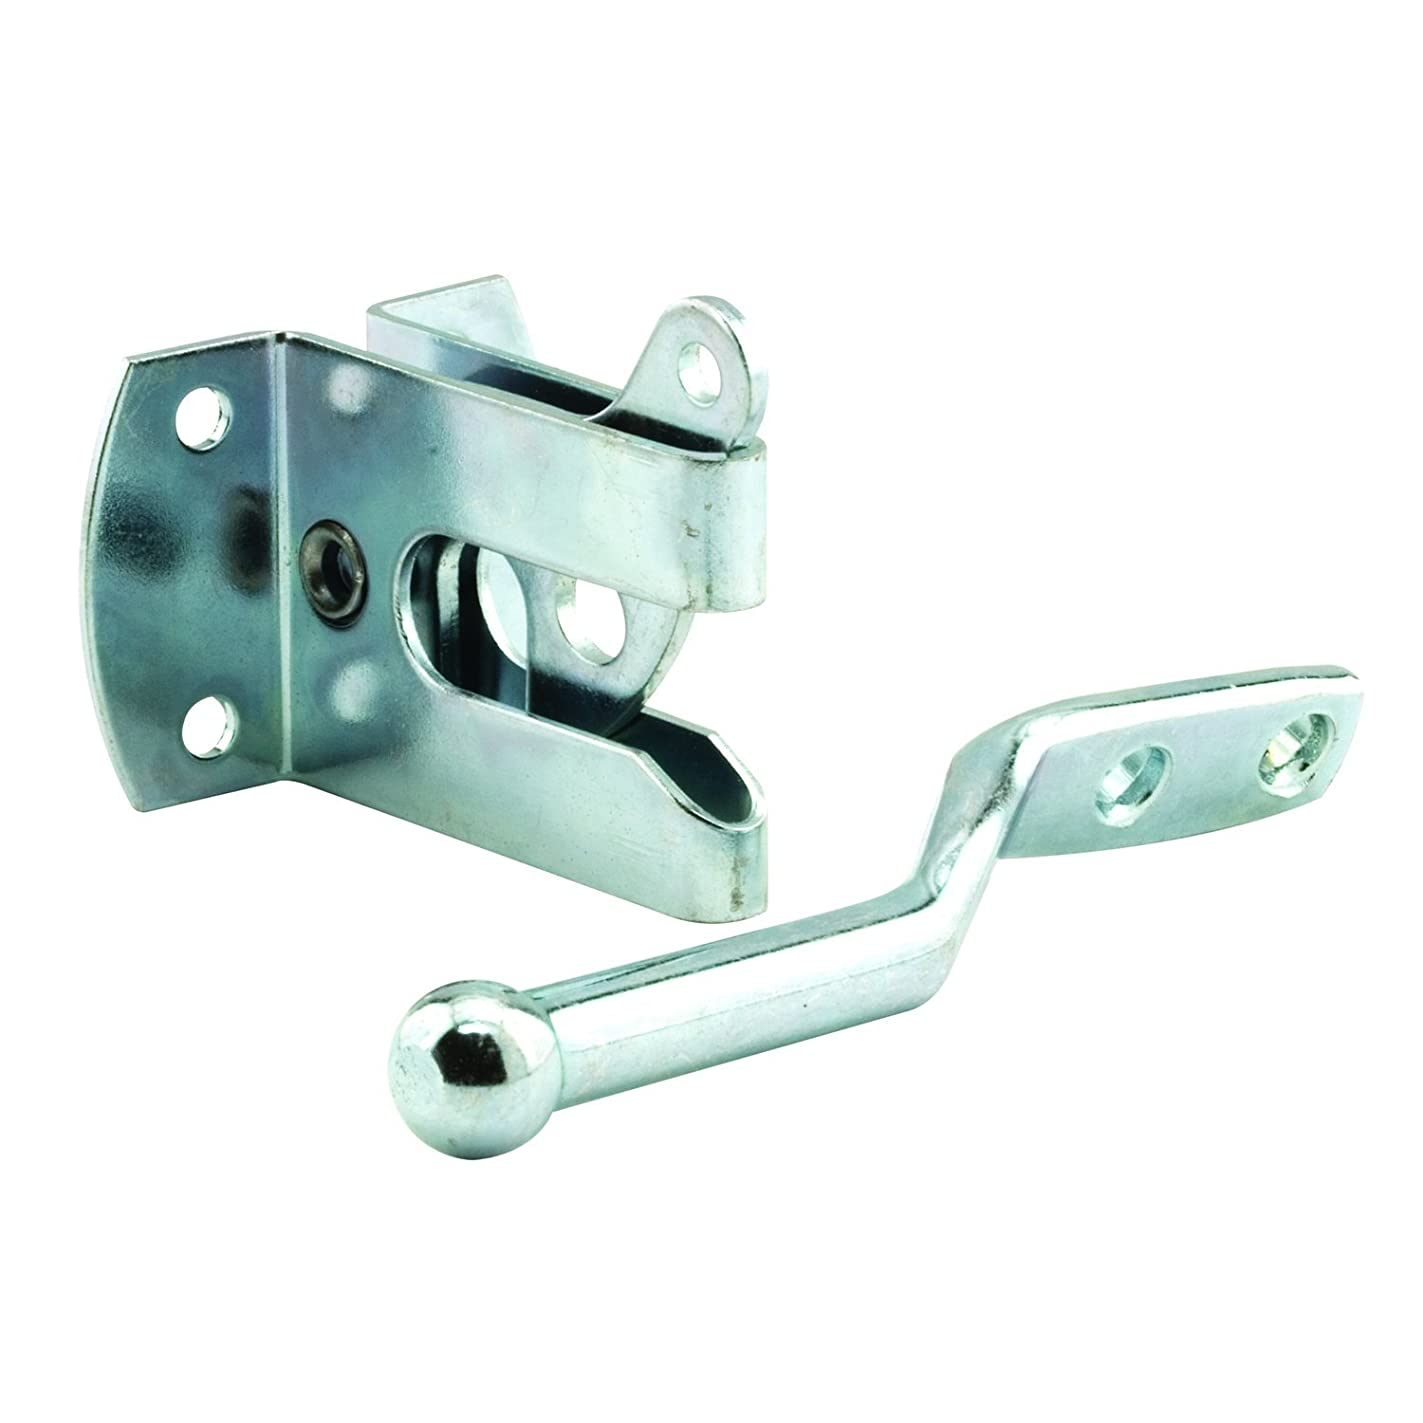 Prime-Line MP9017 Gate Latch & Strike Set, 1-7/8 in. x 1-9/16 in, Steel, Zinc Plated, Pack of 1